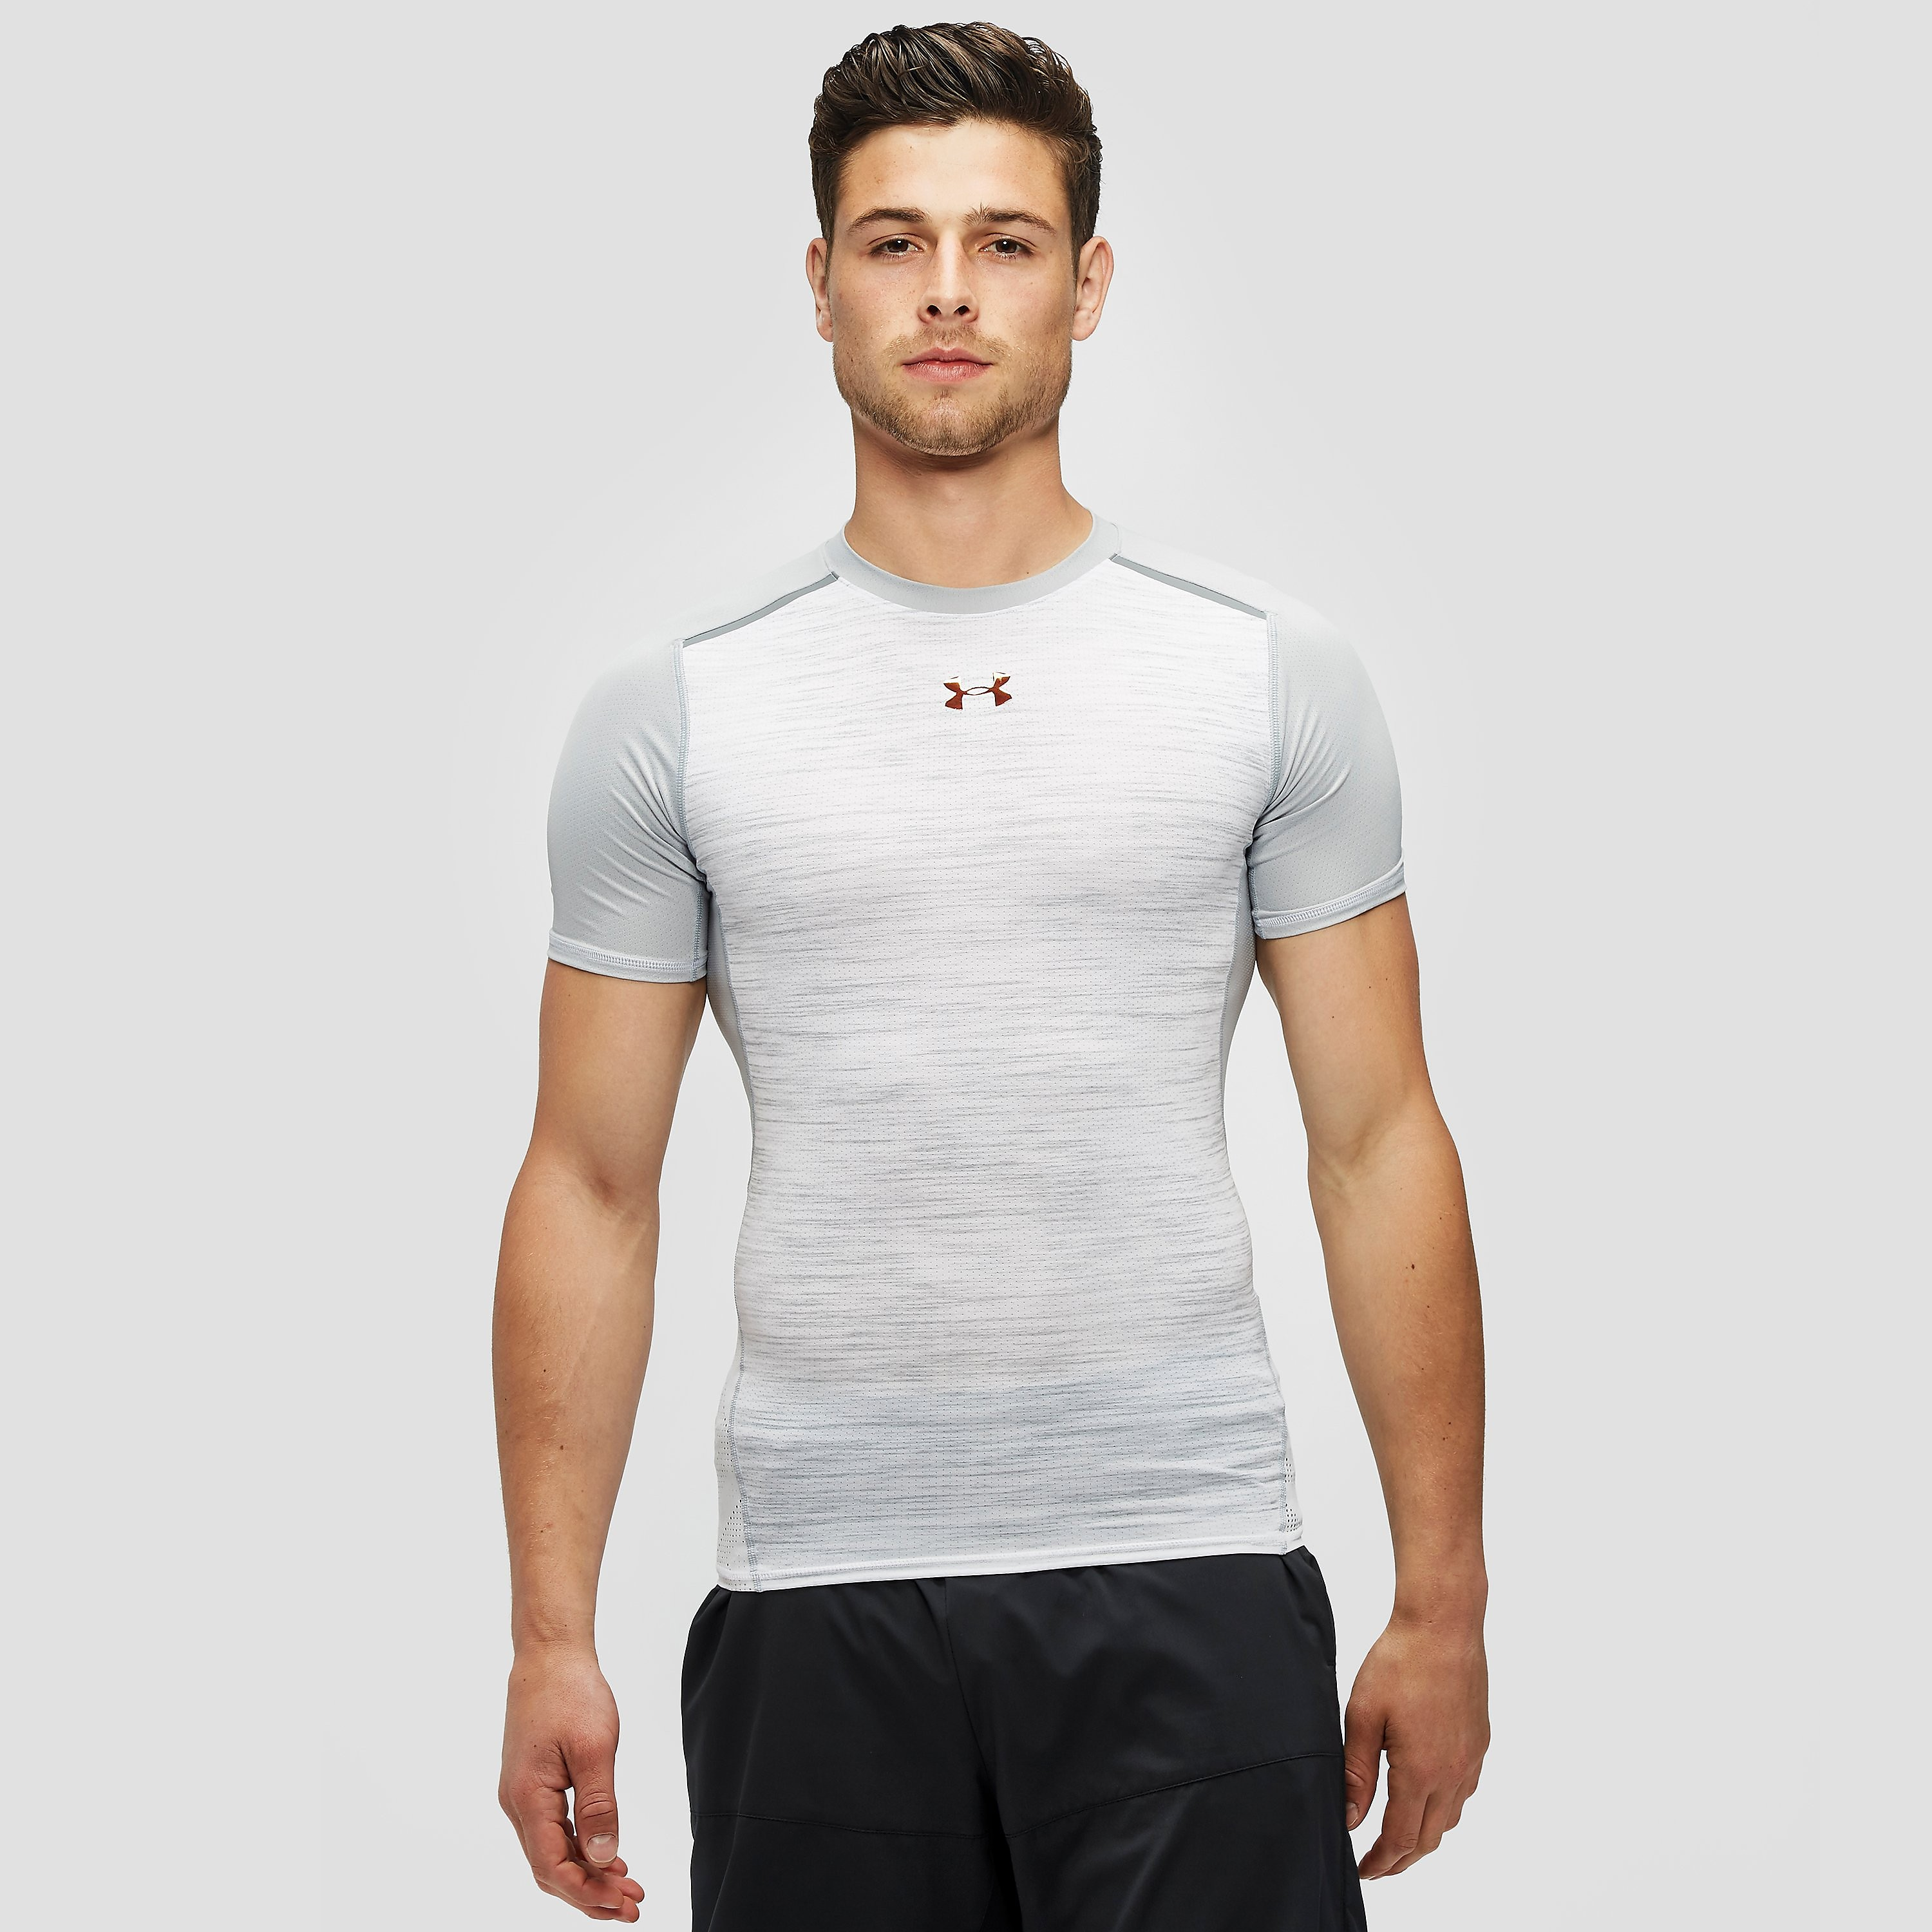 UNDER ARMOUR Coolswitch ArmourVent Podium Men's Compression Top